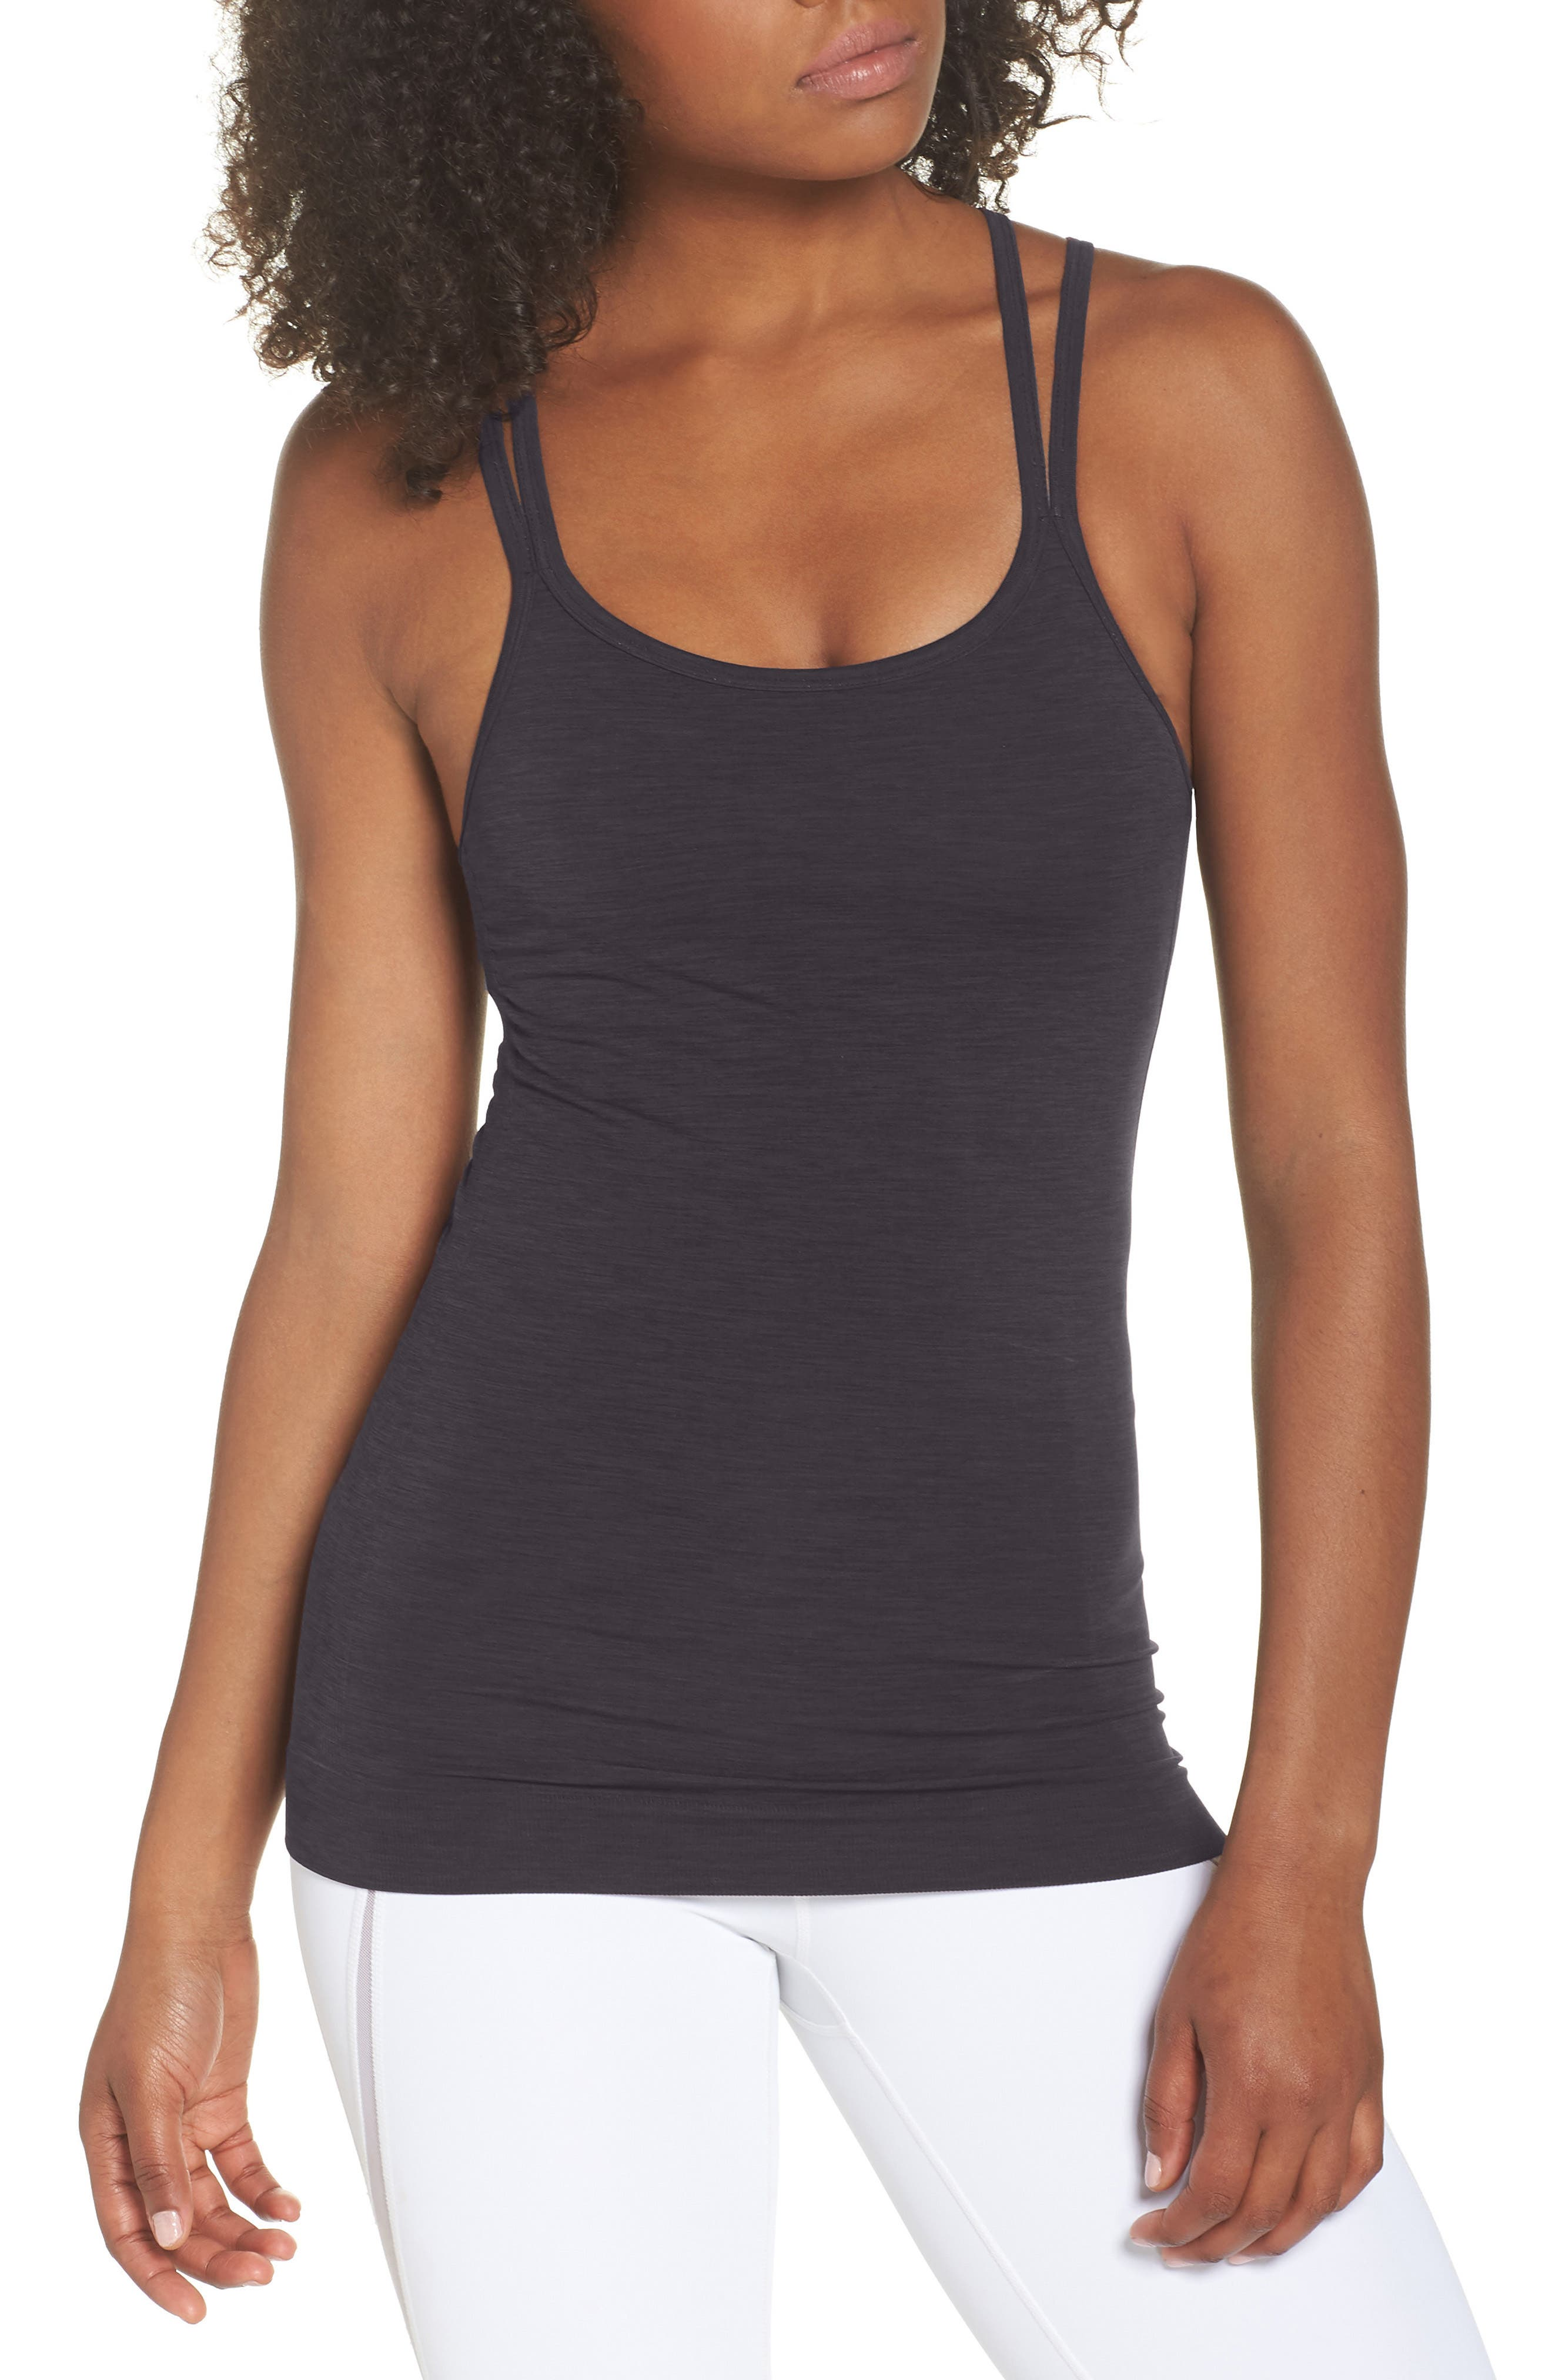 Namaska Yoga Tank,                             Main thumbnail 1, color,